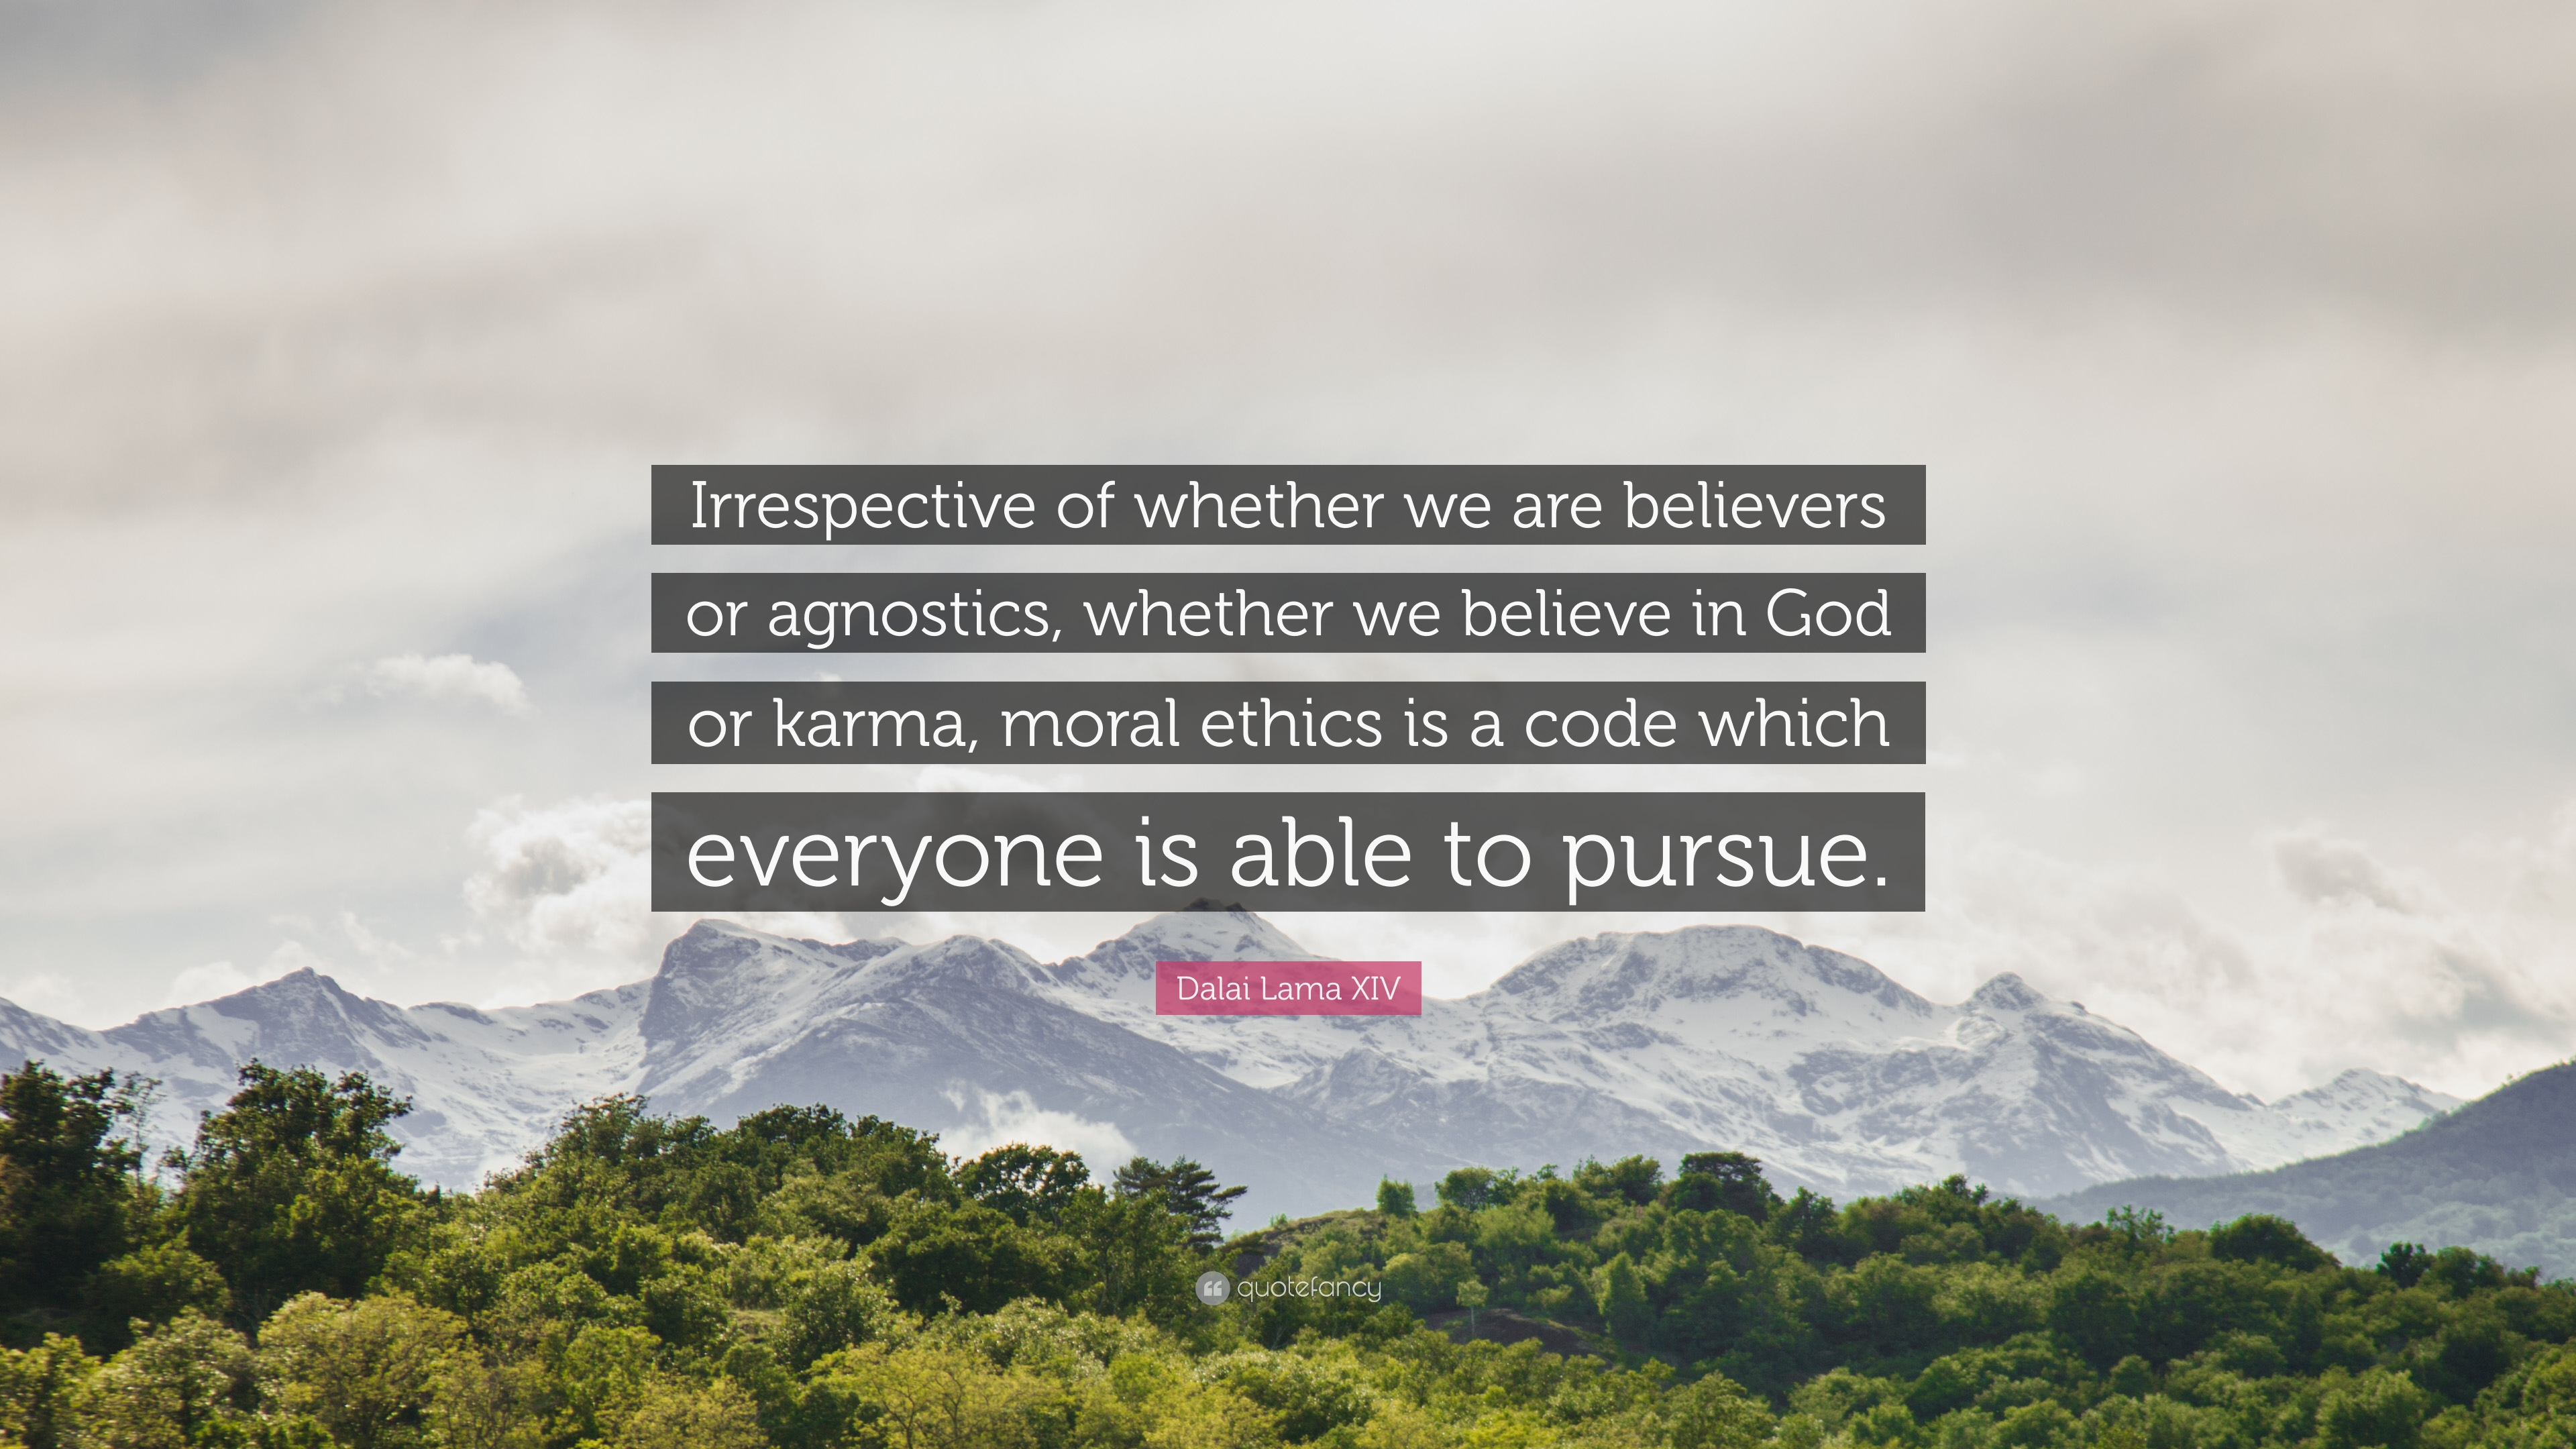 Dalai Lama Xiv Quote Irrespective Of Whether We Are Believers Or